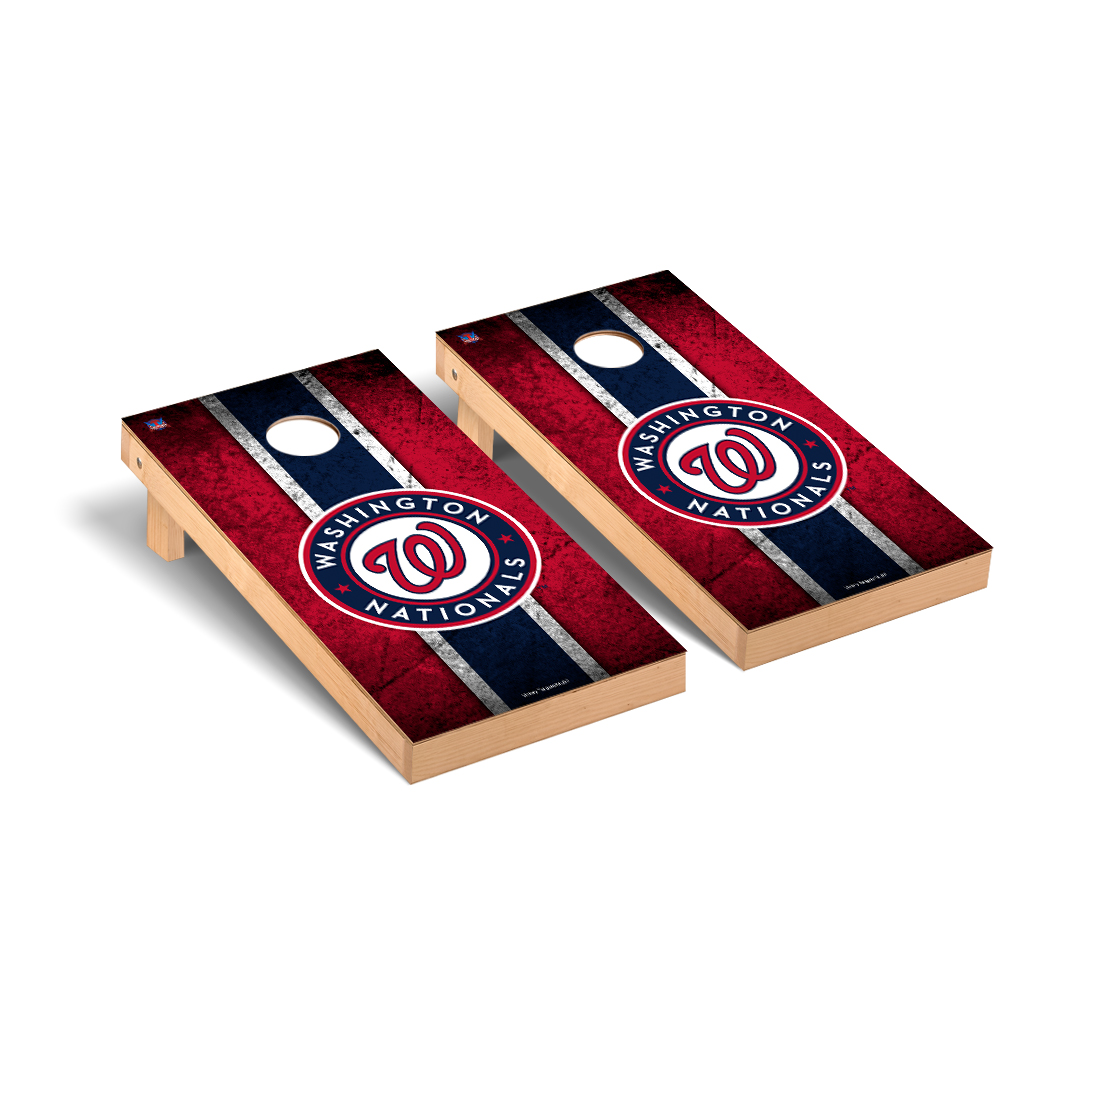 Washington Nationals MLB Baseball Cornhole Game Set Vintage Version